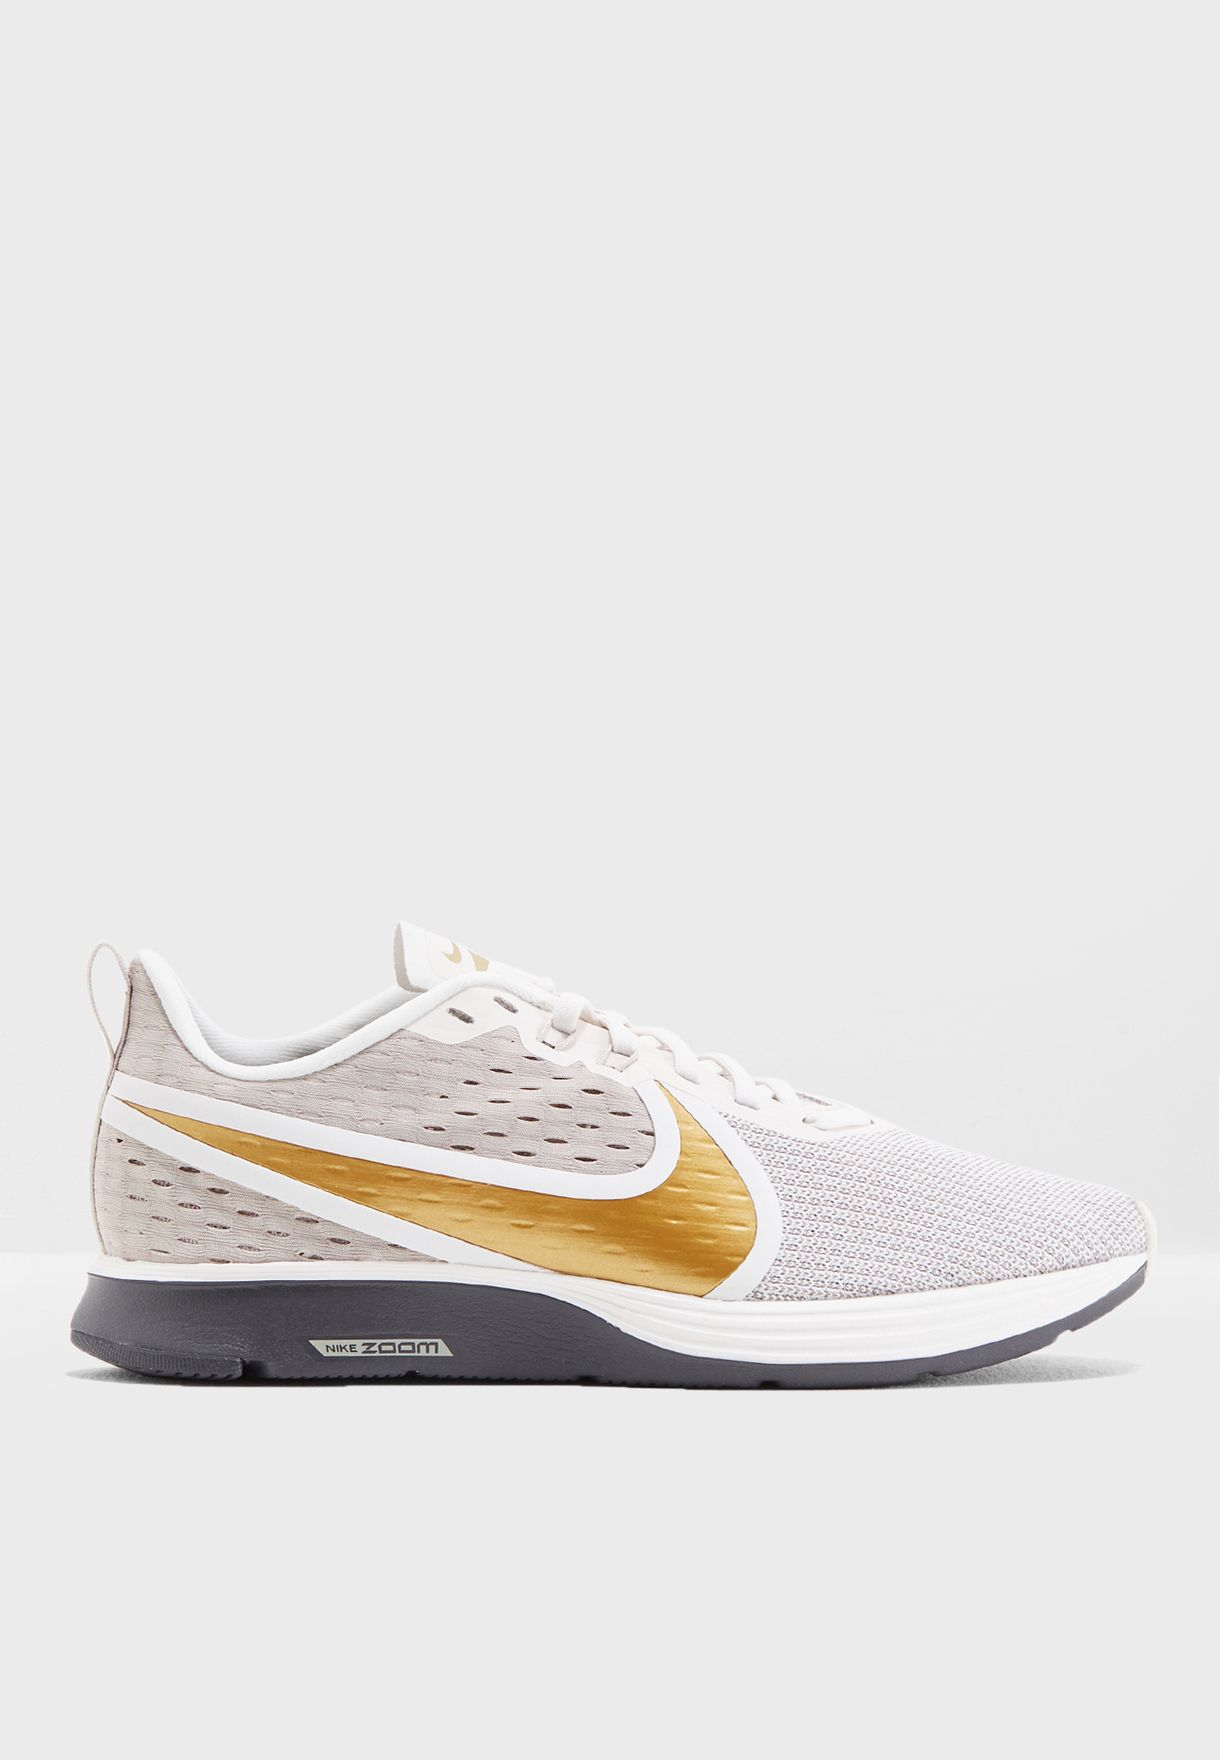 3c4326749f76 Shop Nike grey Zoom Strike 2 AO1913-200 for Women in Saudi ...